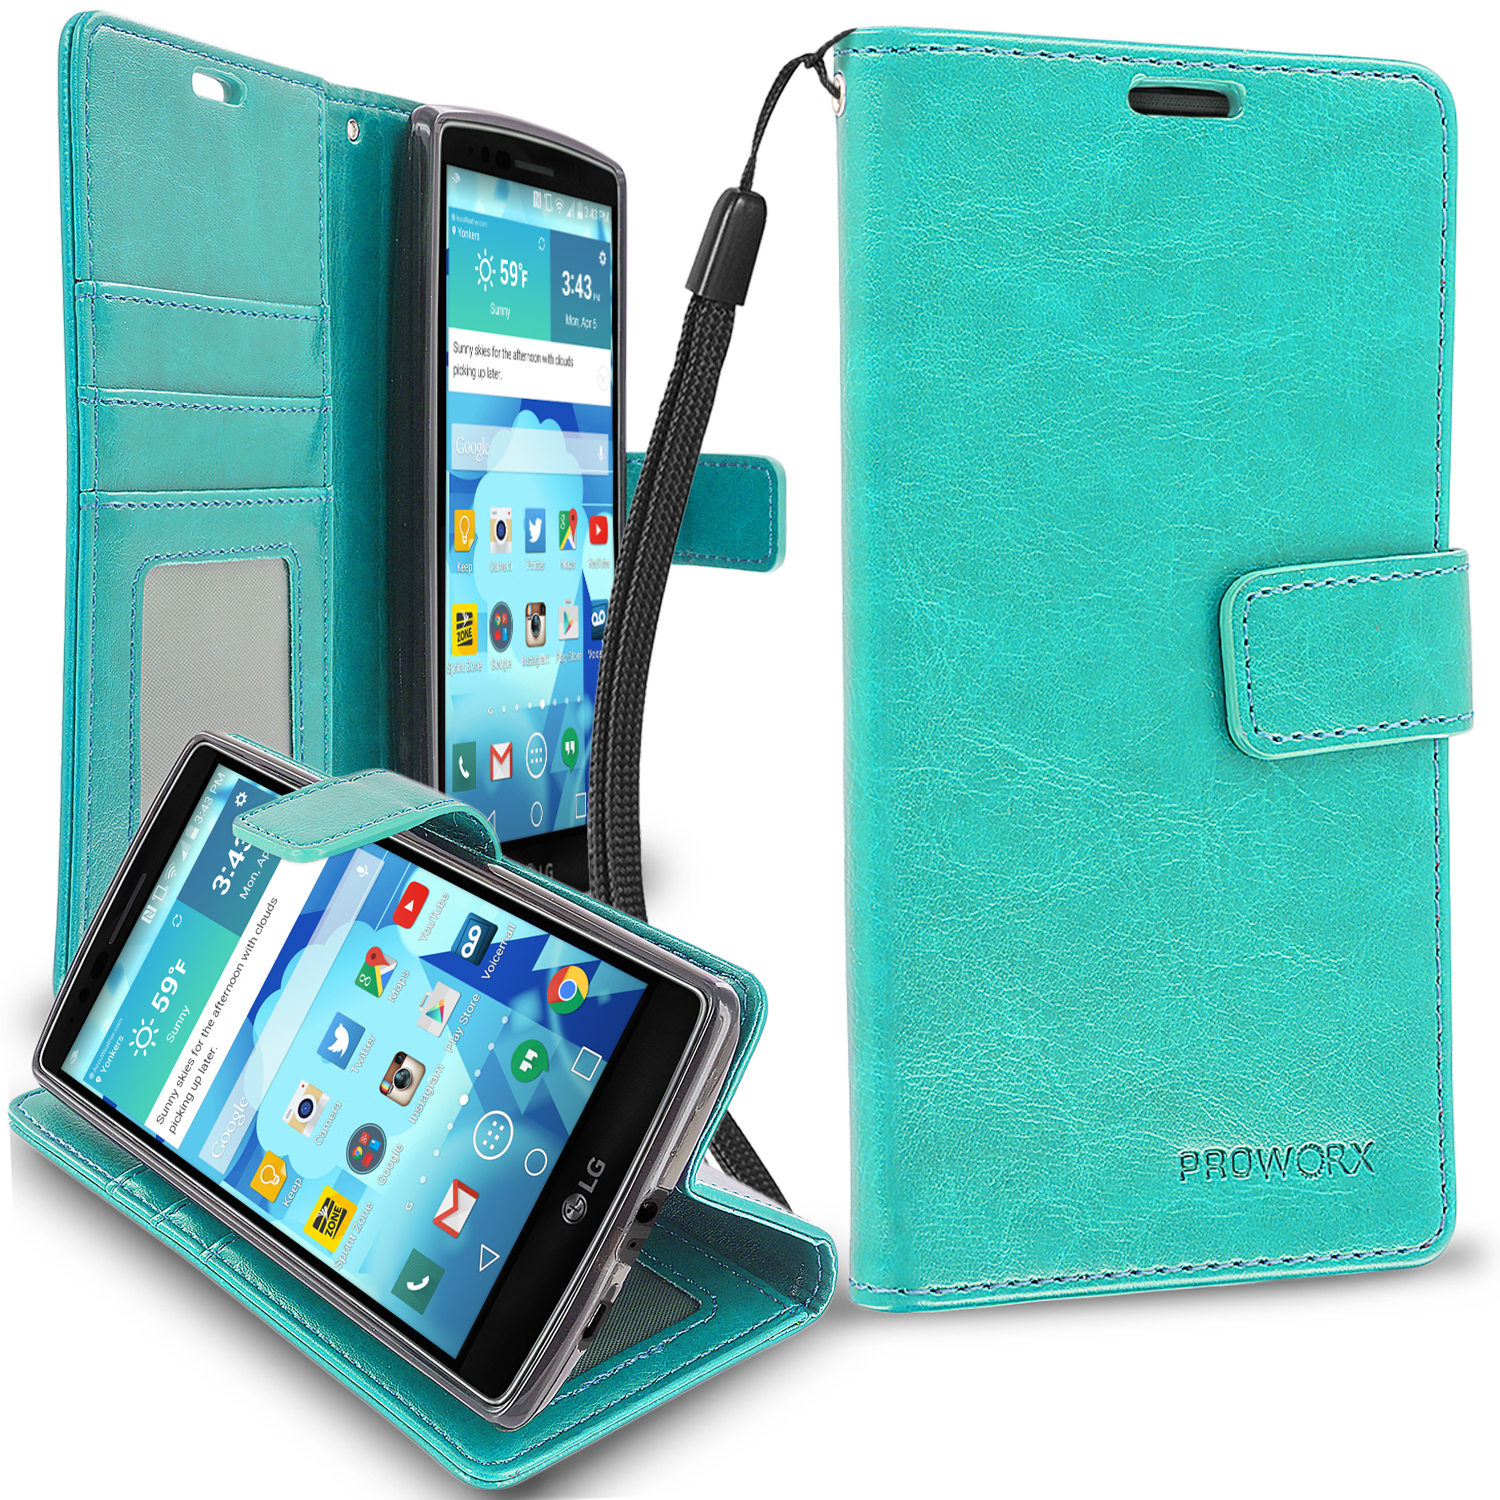 LG G Flex 2 Mint Green ProWorx Wallet Case Luxury PU Leather Case Cover With Card Slots & Stand